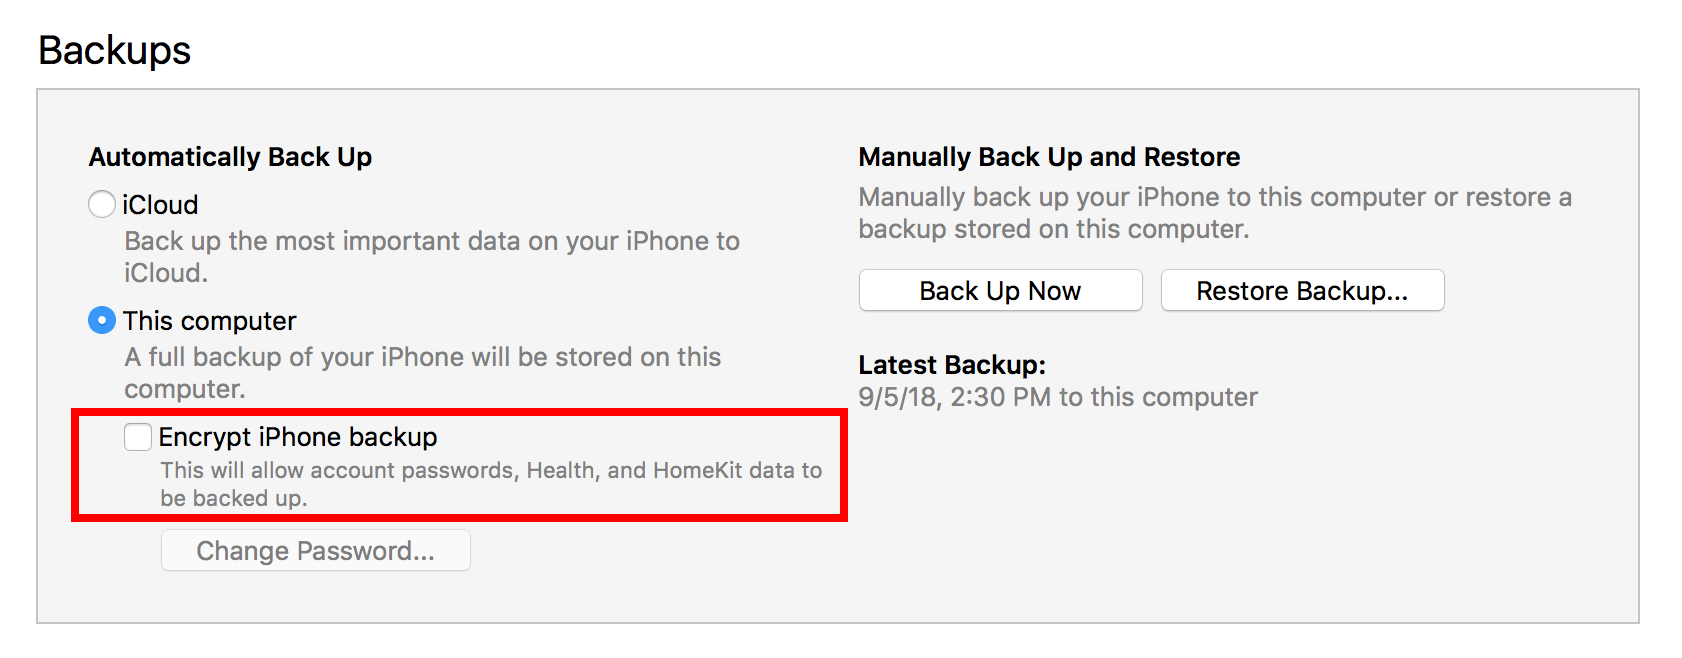 Six things you might not know about iTunes backups!